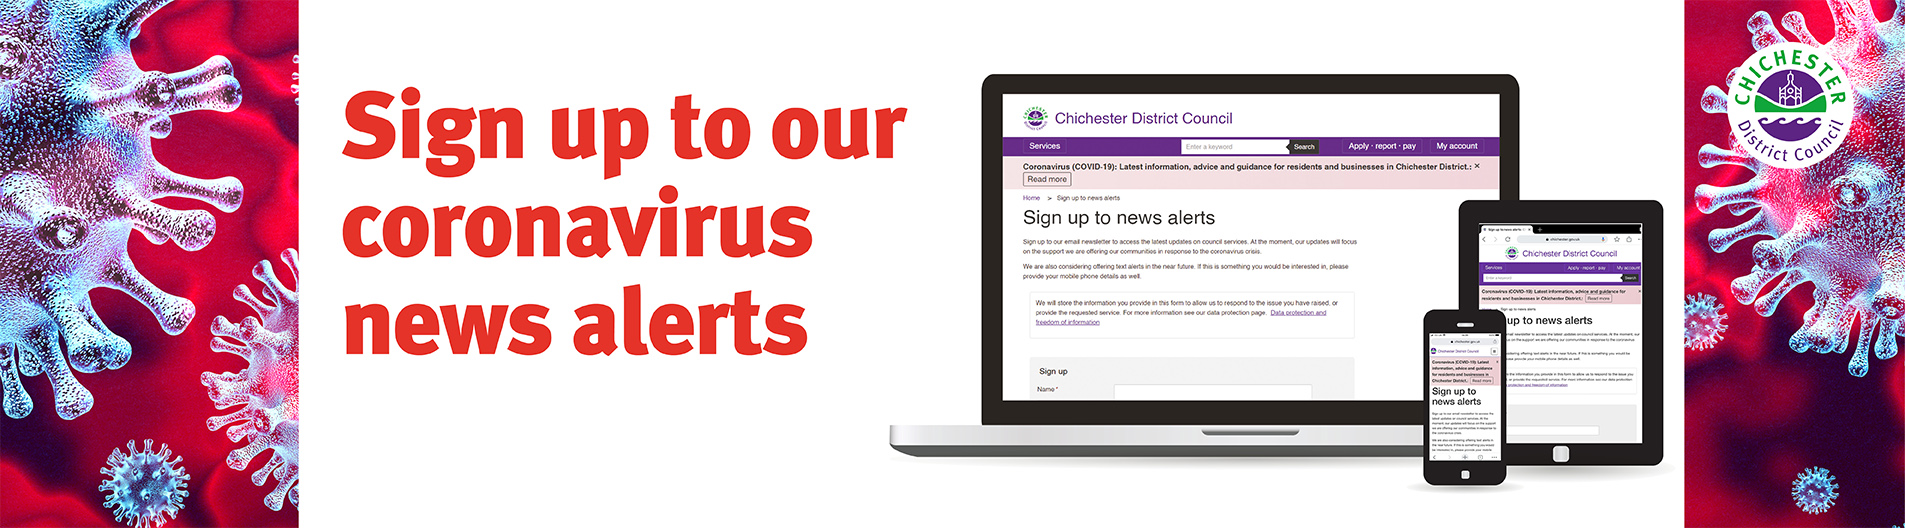 Sign up to news alerts